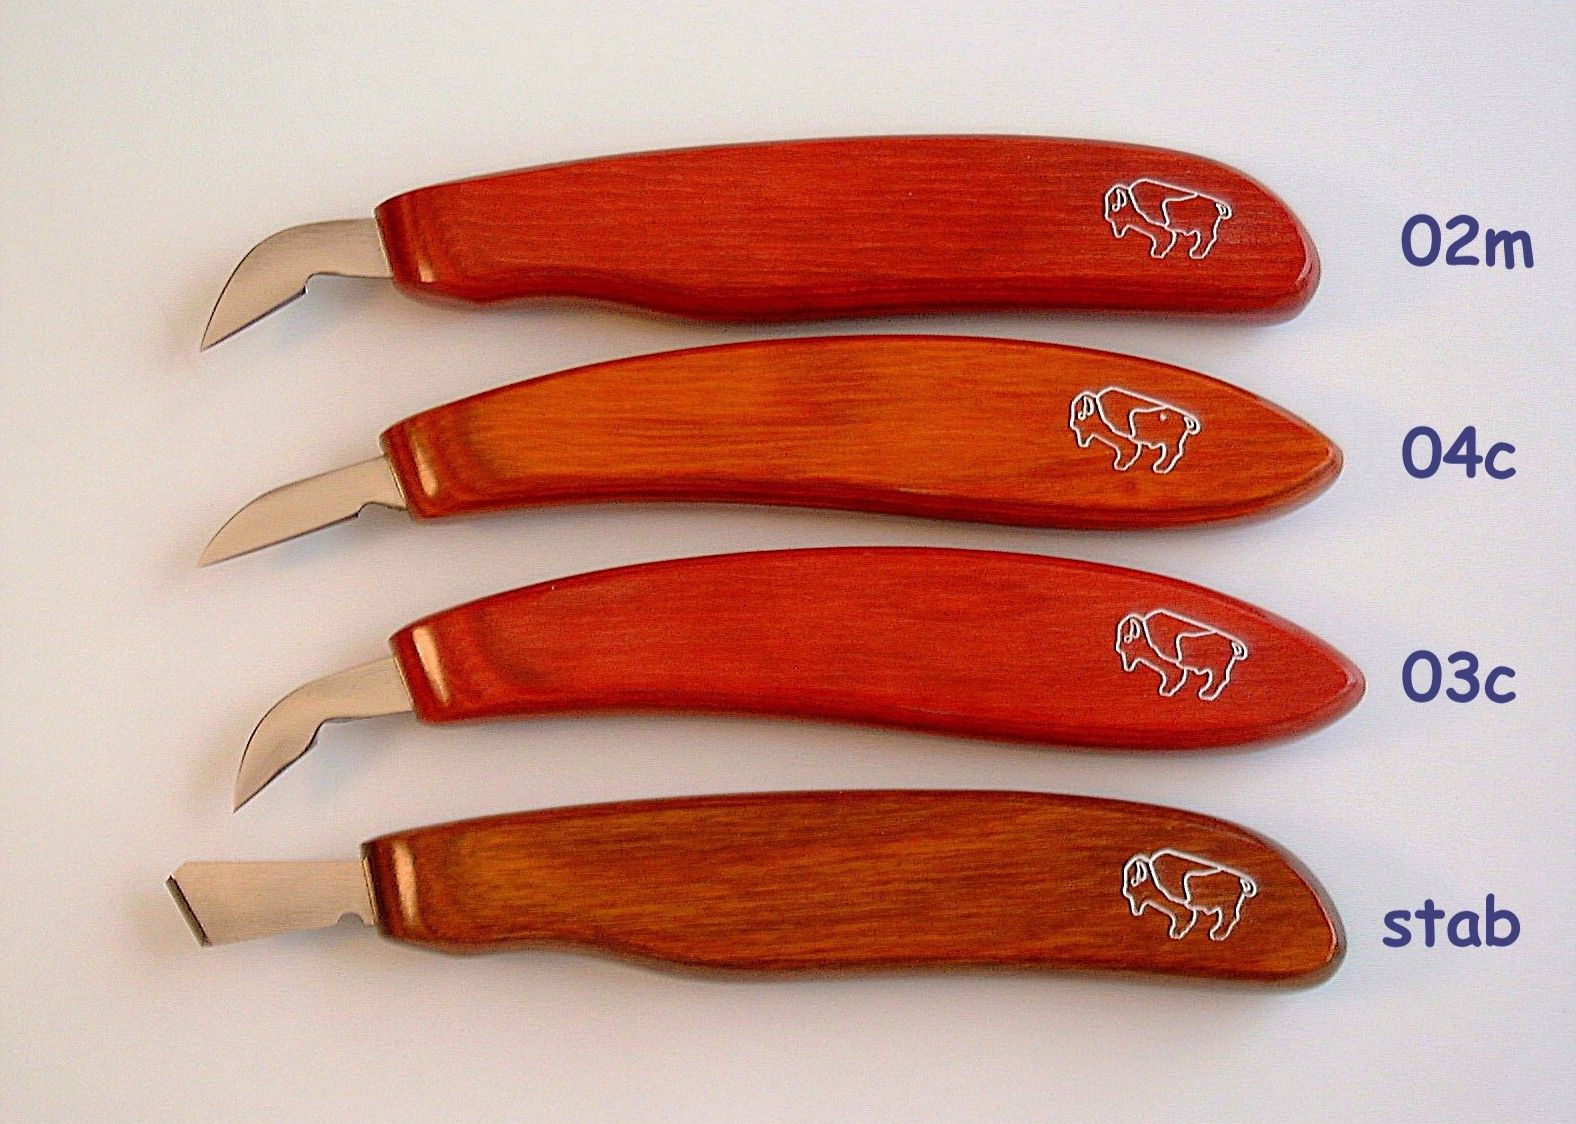 Chip carving knives custom made by. david j notto $33.00 each